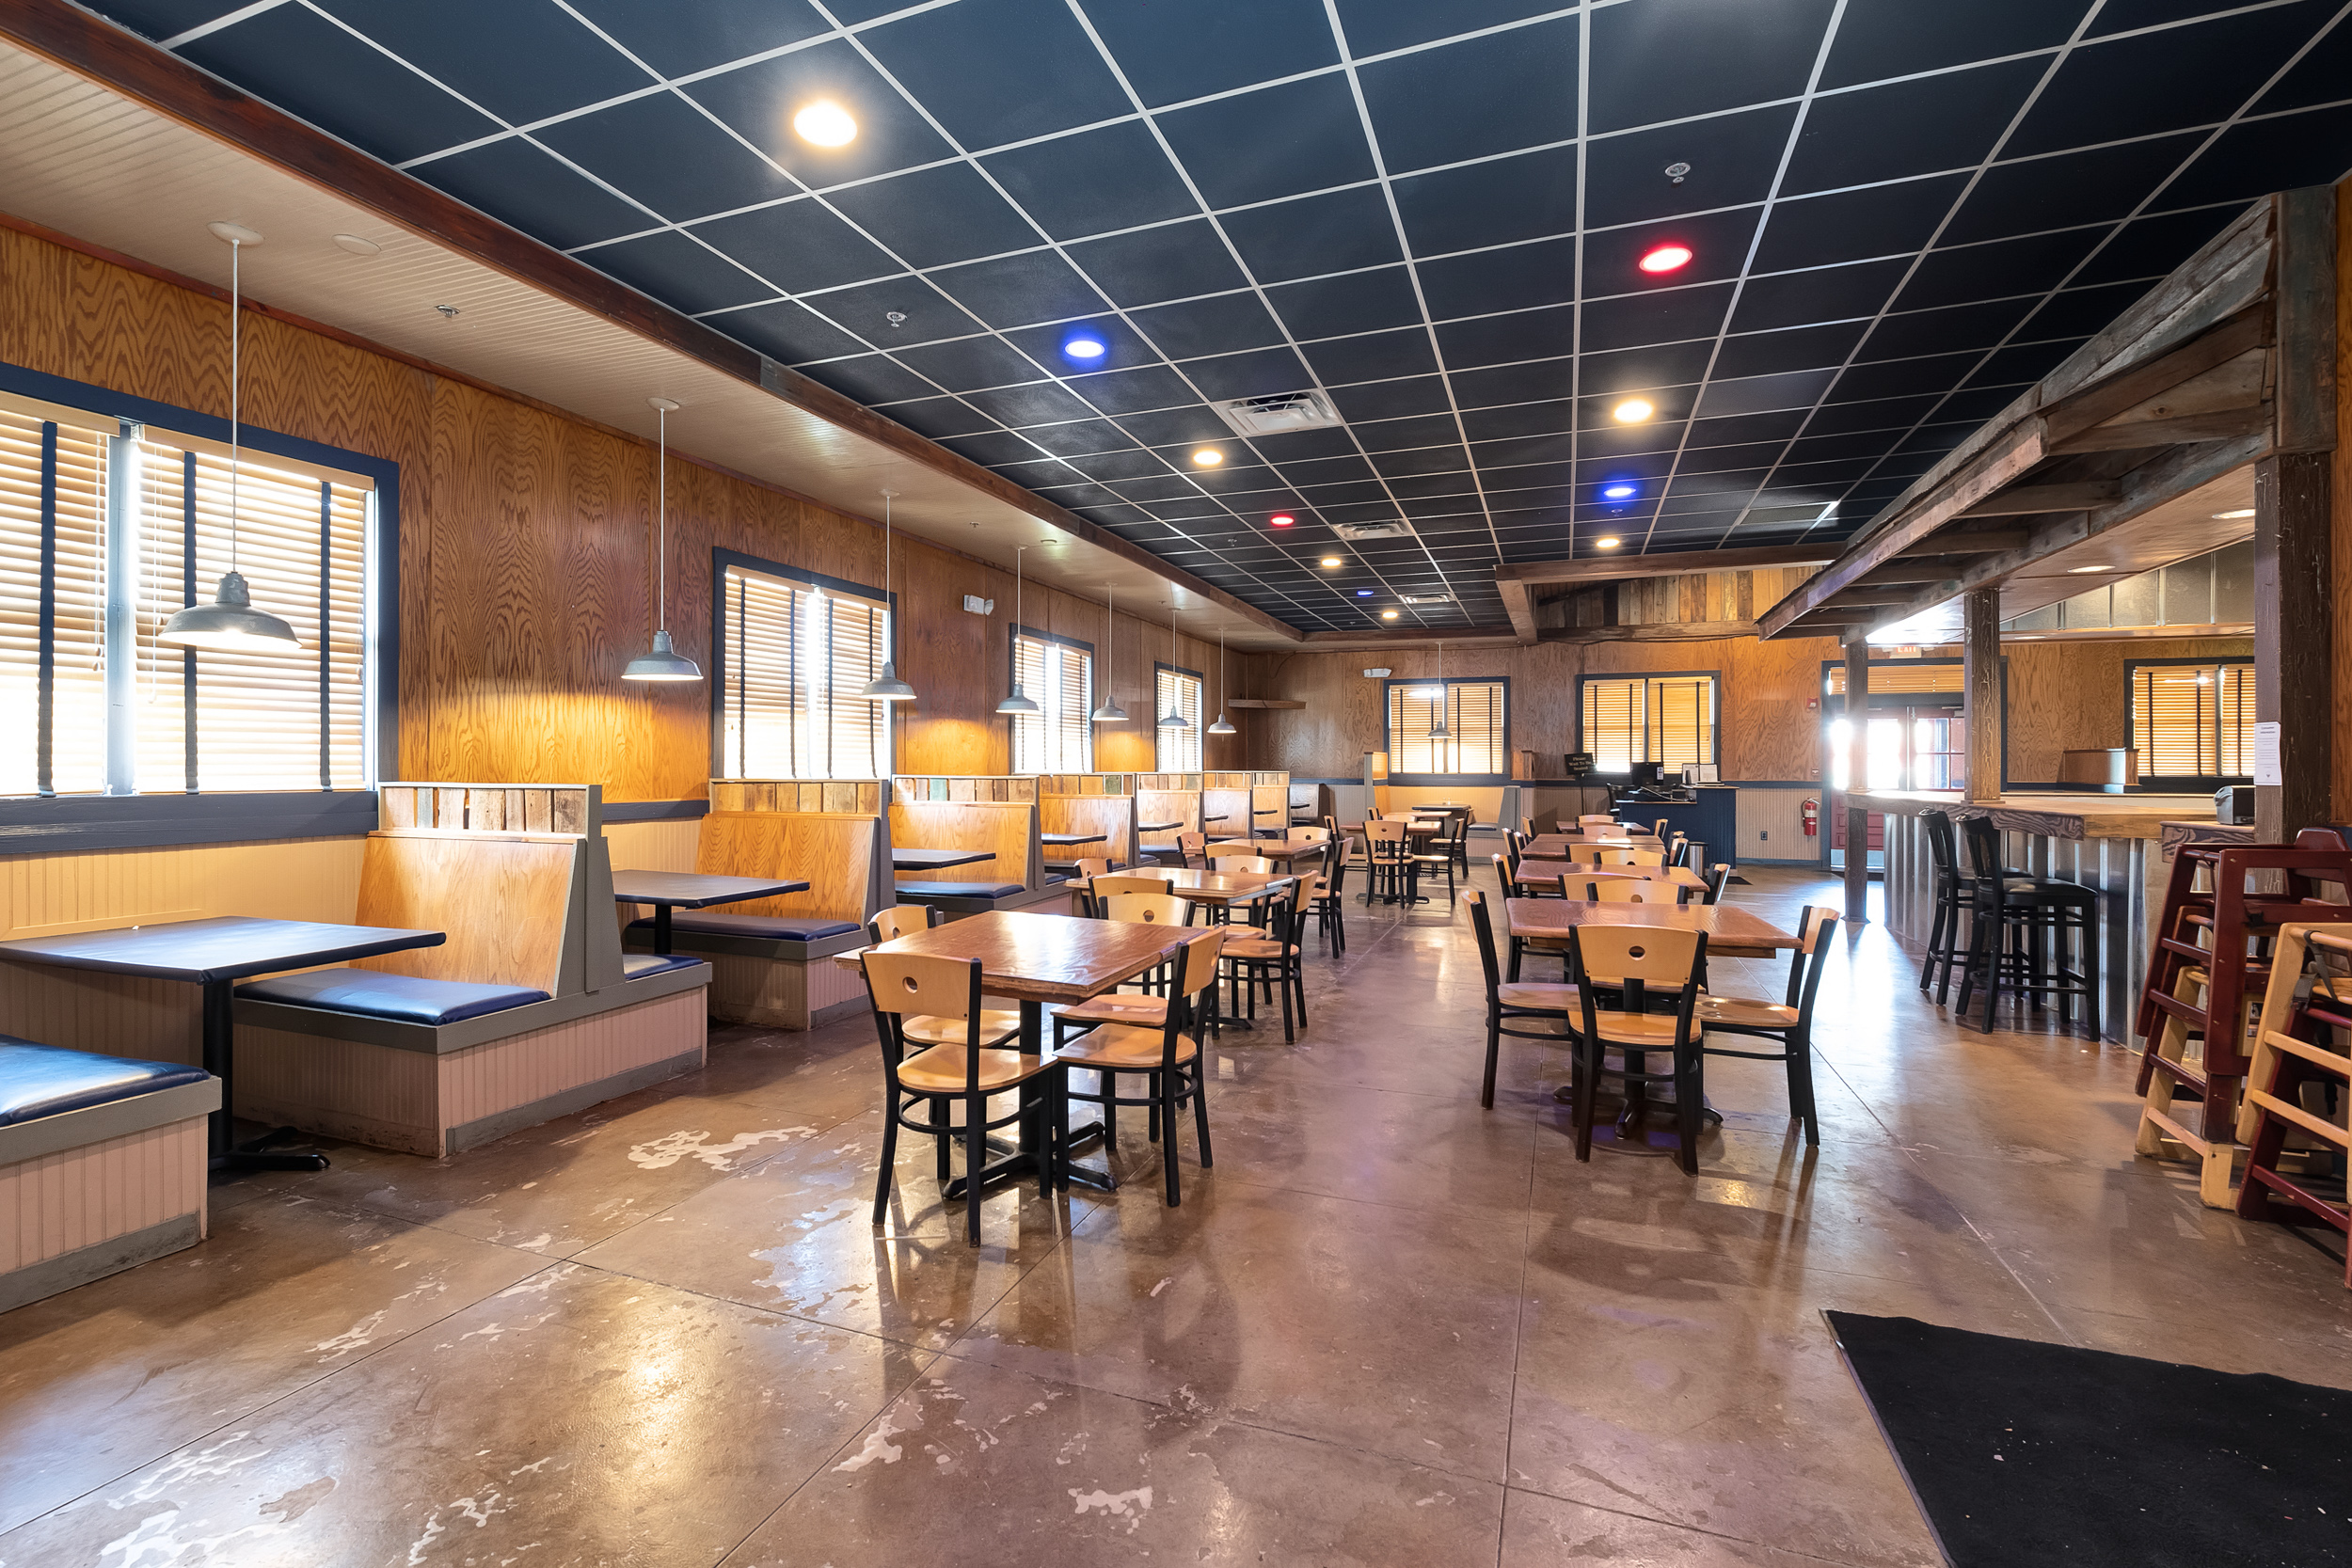 #1: Commercial Restaurant Property With 4,860± SF In Bessemer, AL